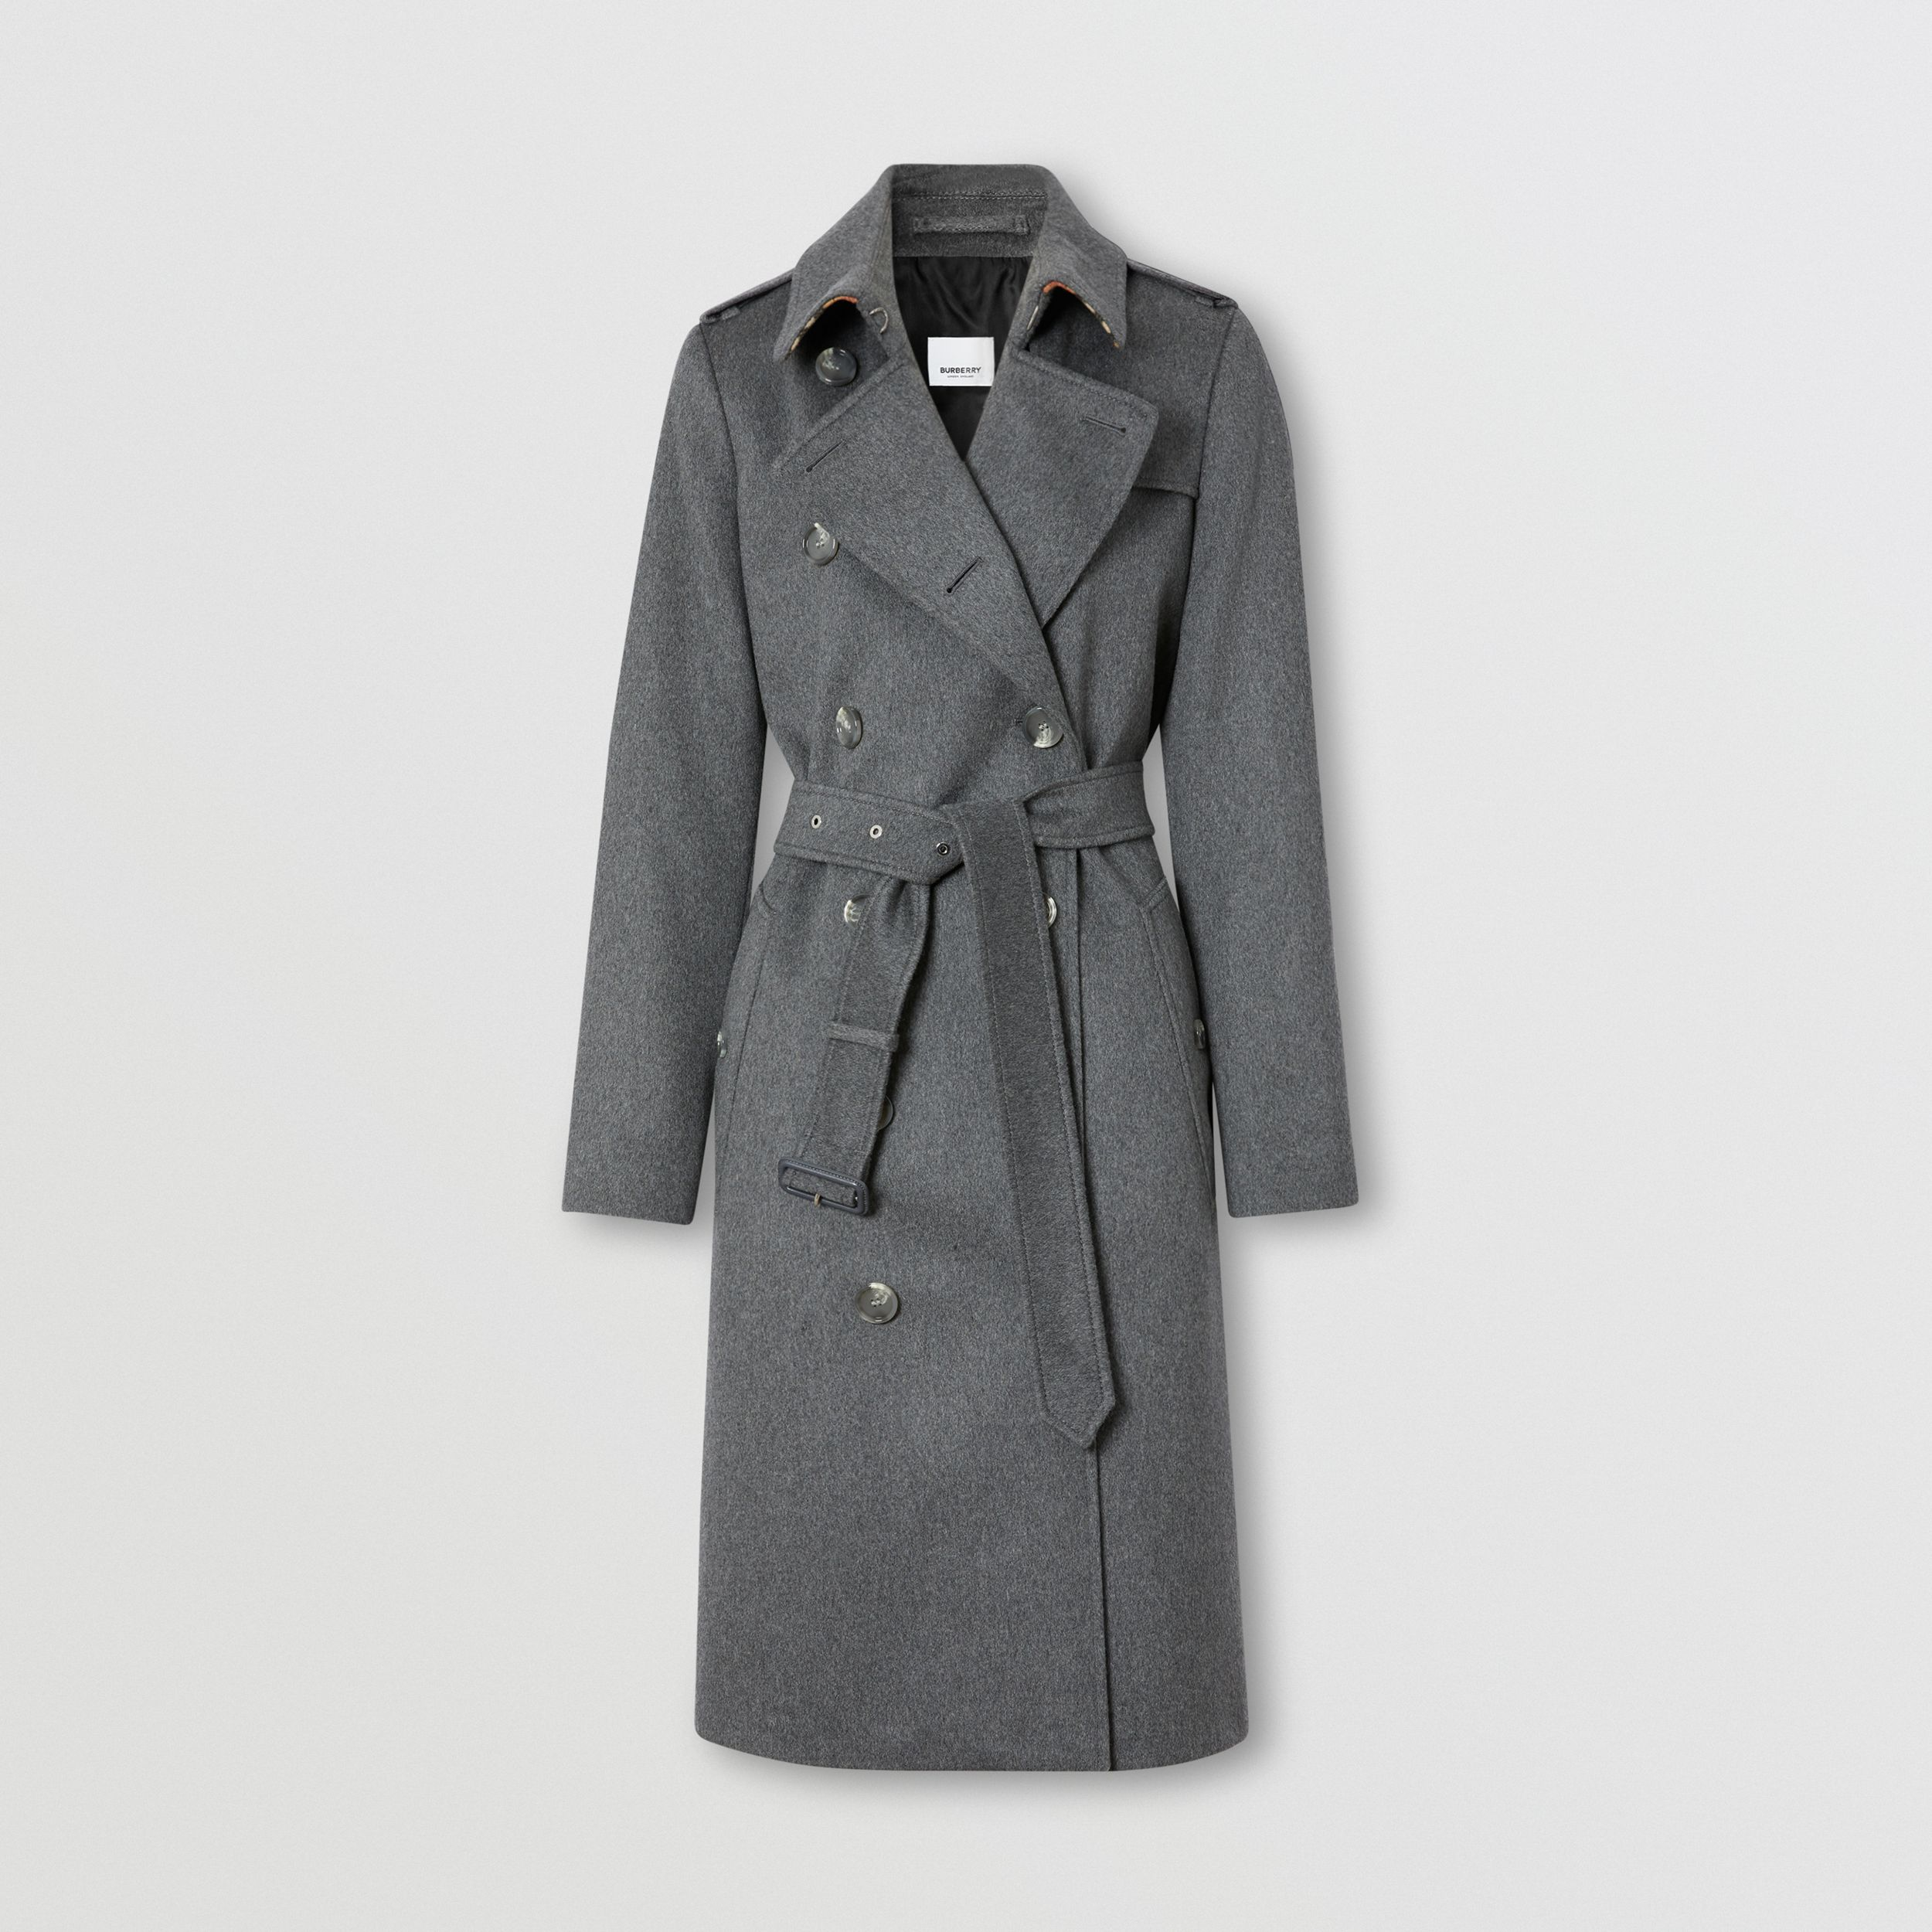 Regenerated Cashmere Trench Coat in Mid Grey Melange - Women | Burberry - 4